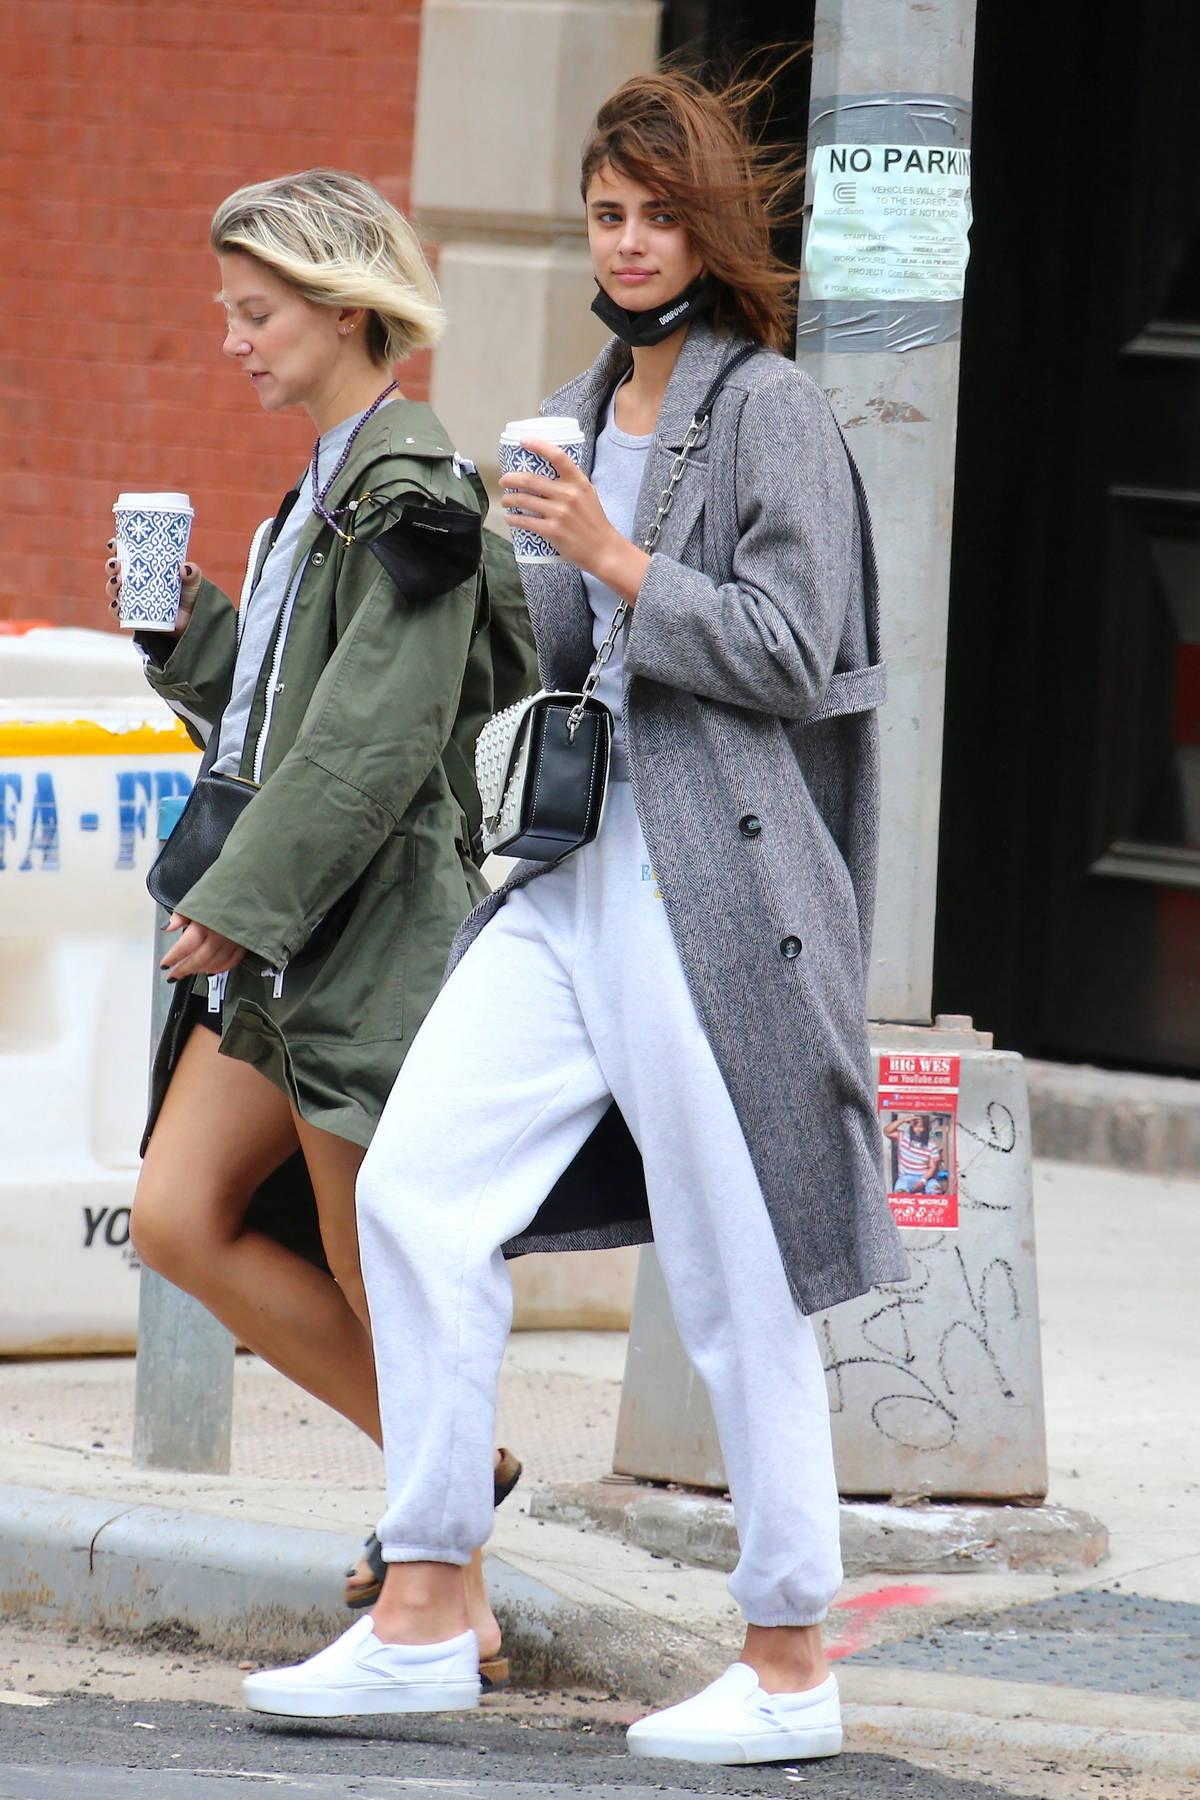 Taylor Hill looks casually chic as she enjoys a stroll and coffee with a friend in Tribeca, New York